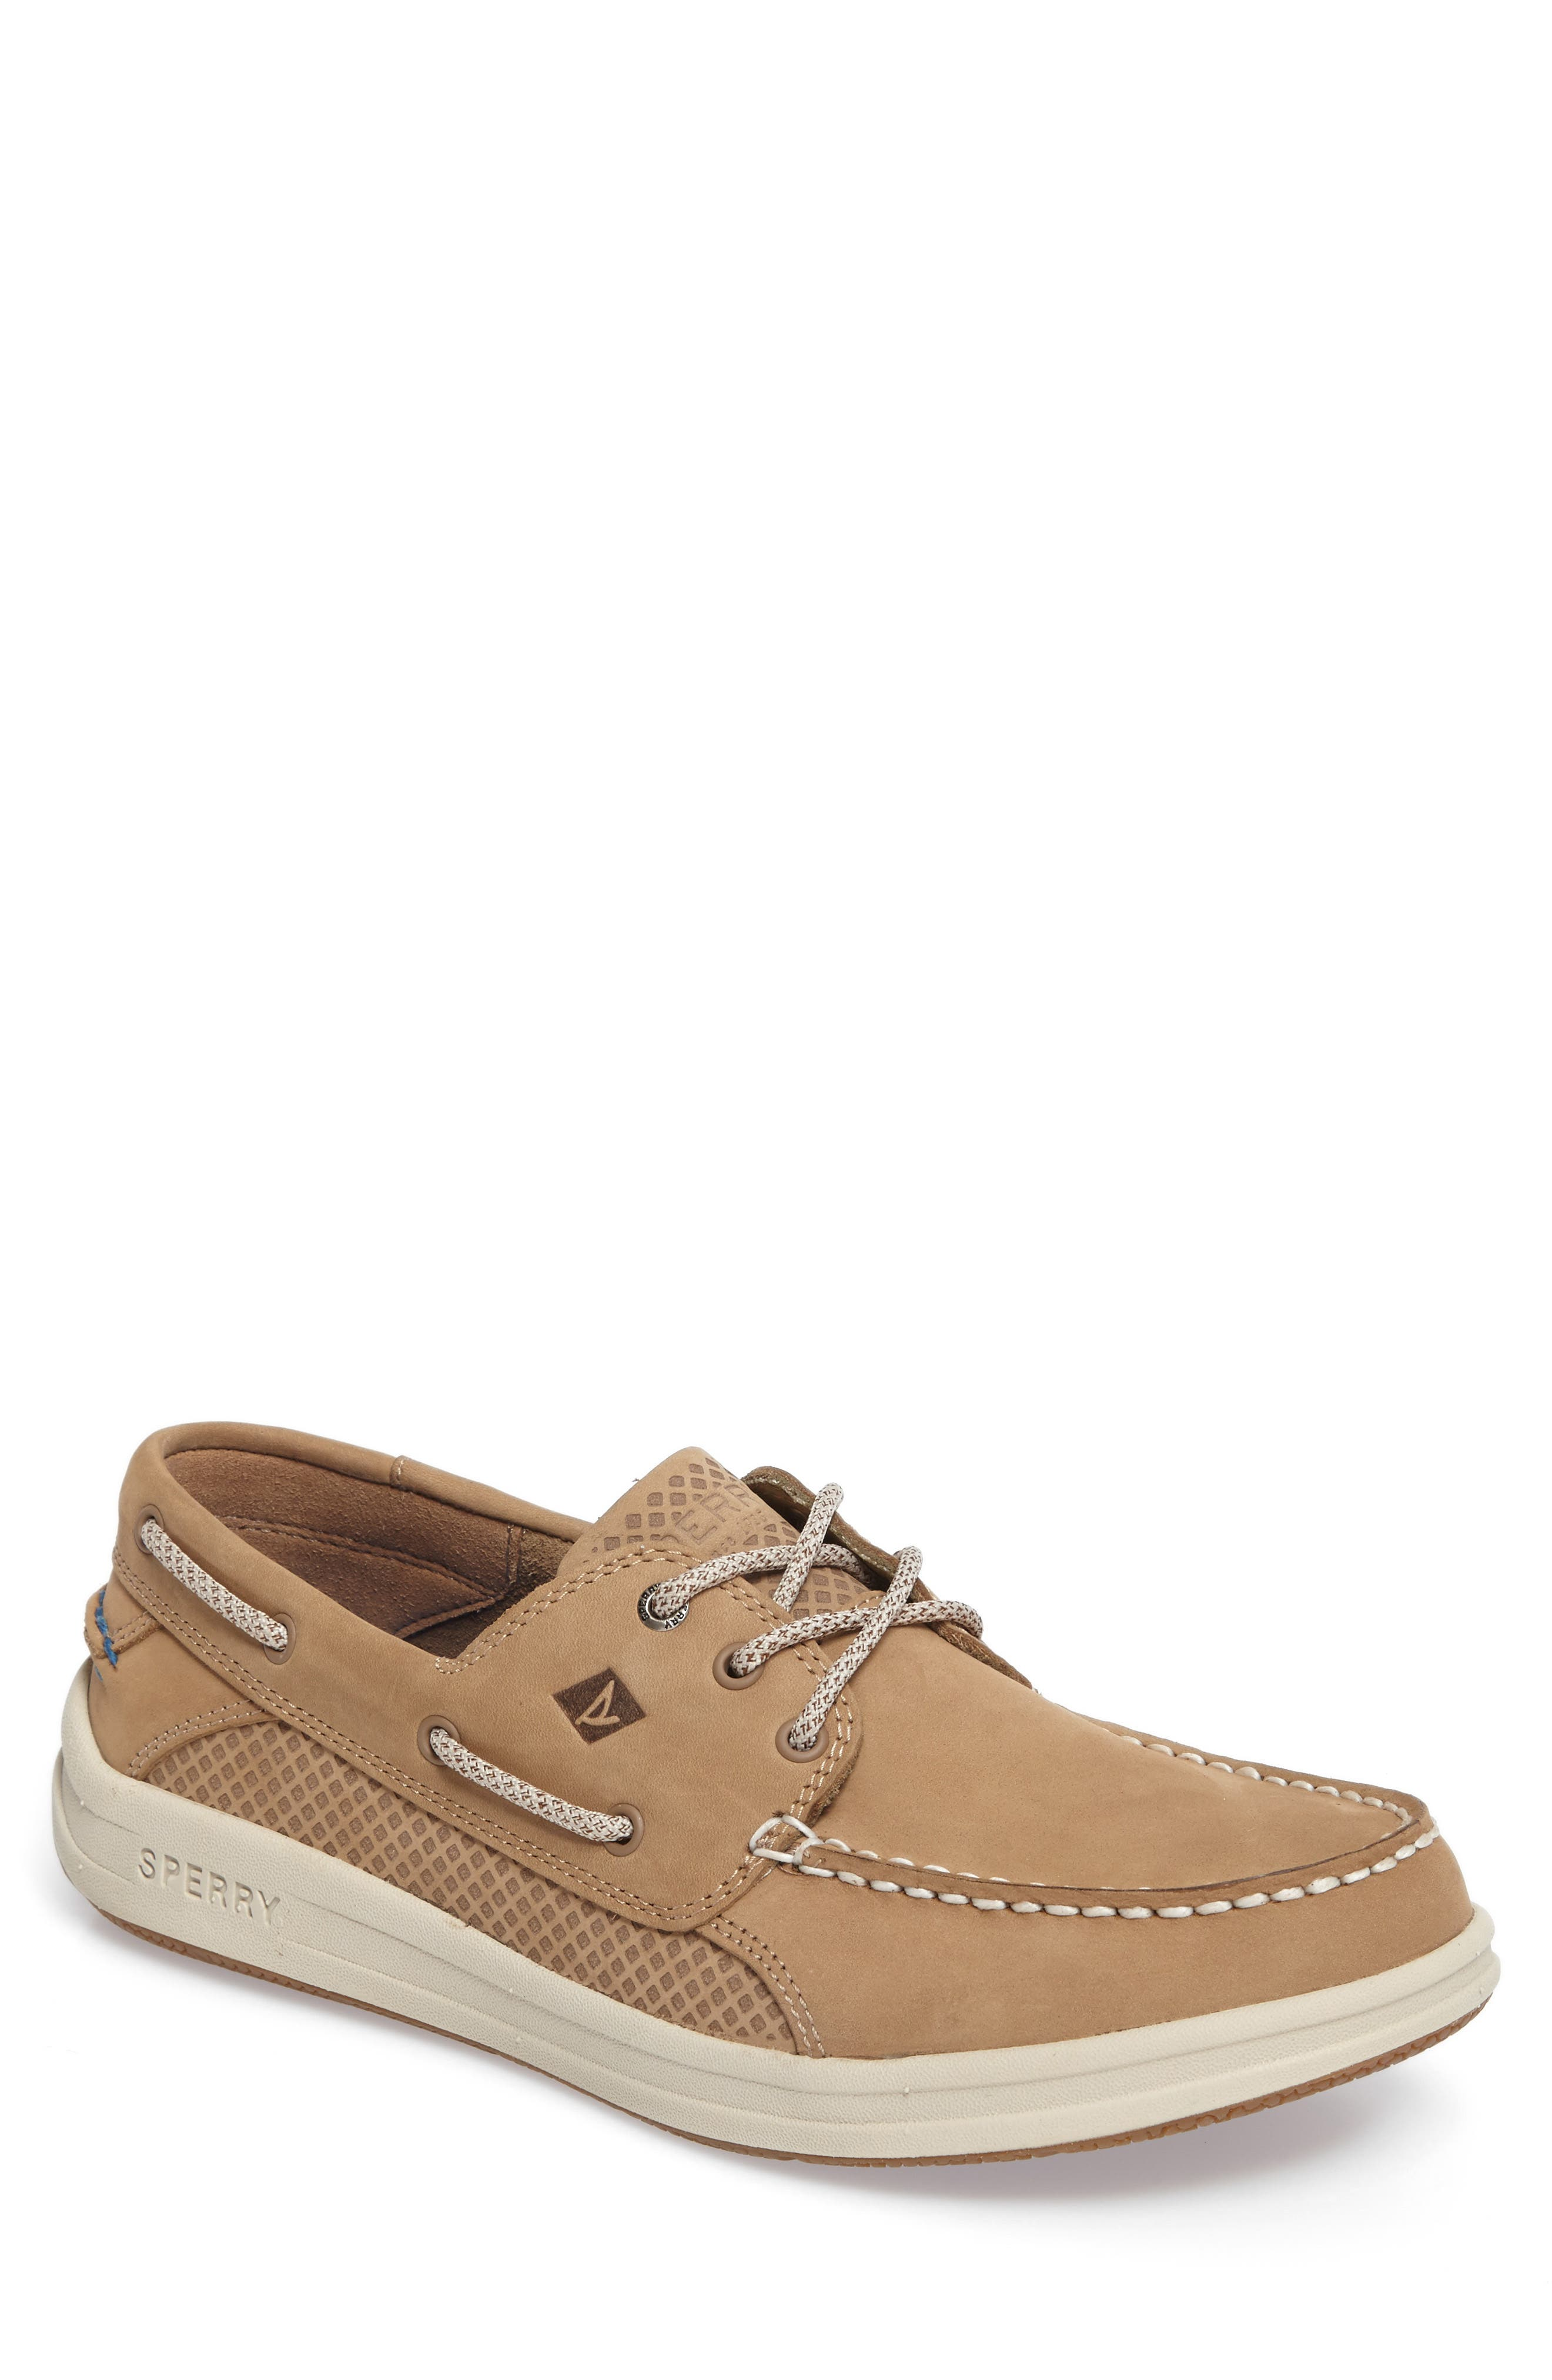 Gamefish Boat Shoe,                         Main,                         color, Linen Leather